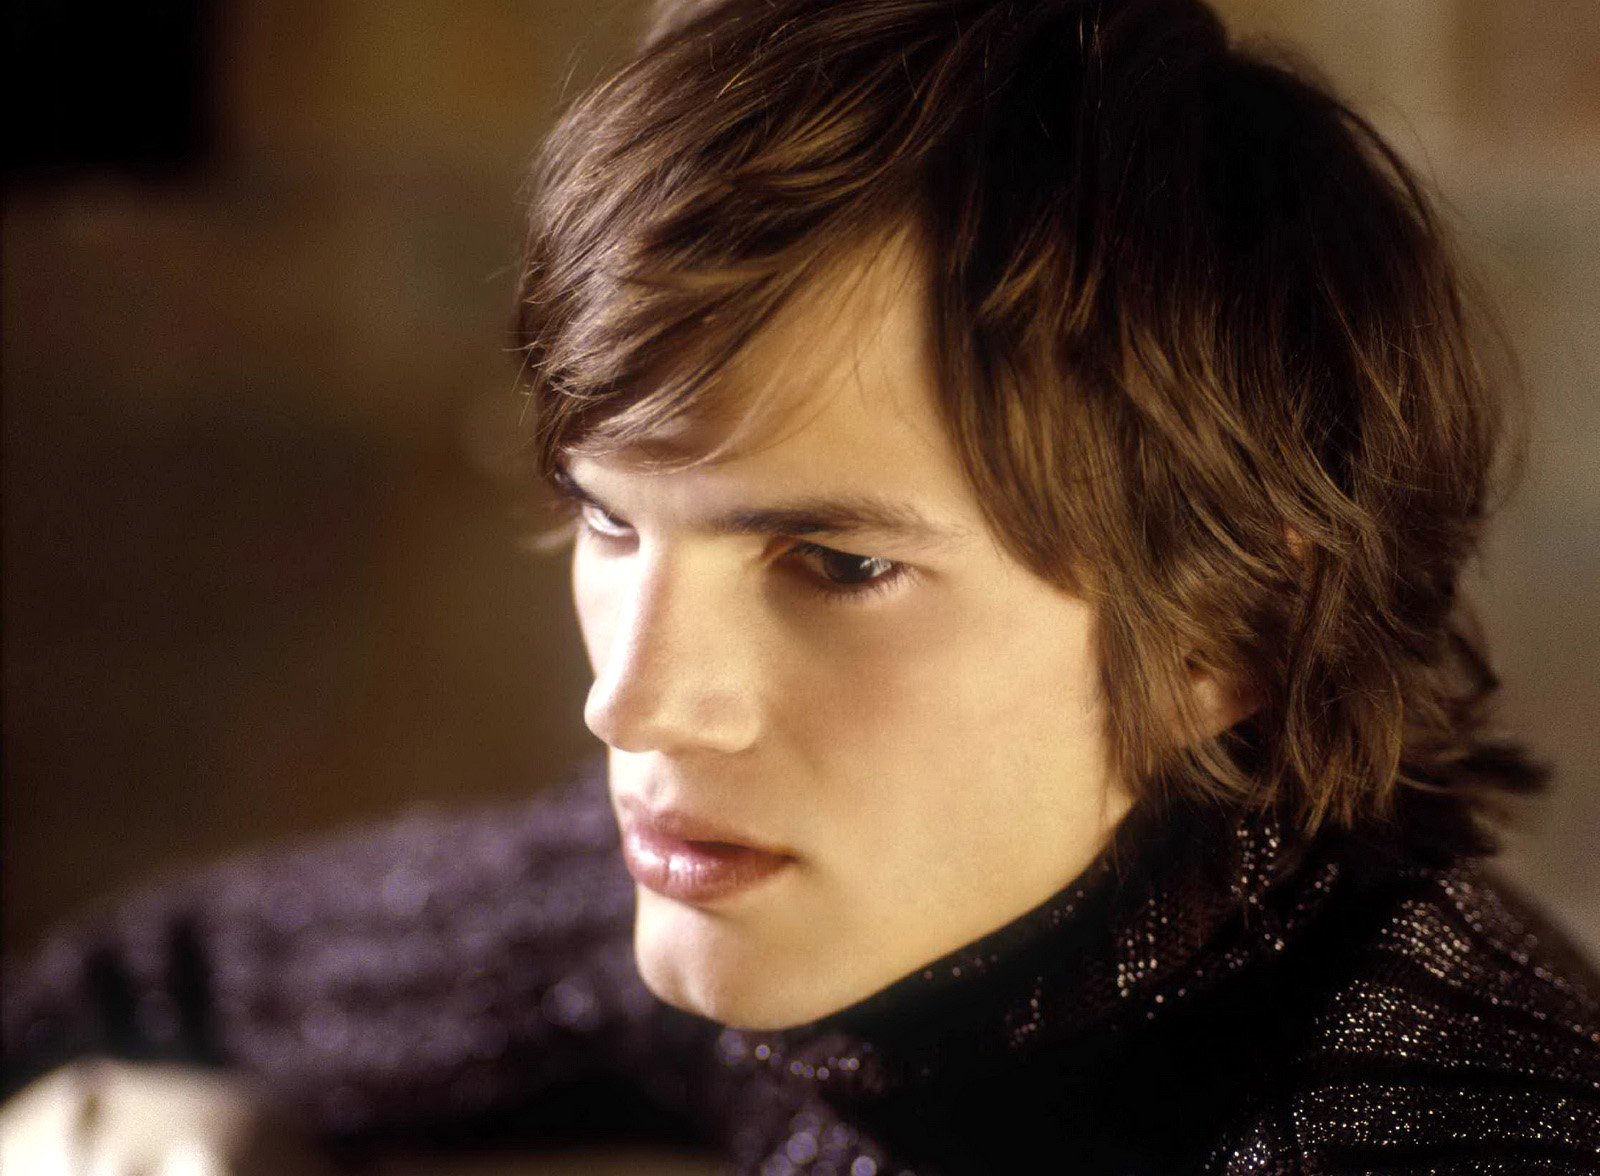 Ashton Kutcher Long Hair Close up wallpapers• PoPoPics.com